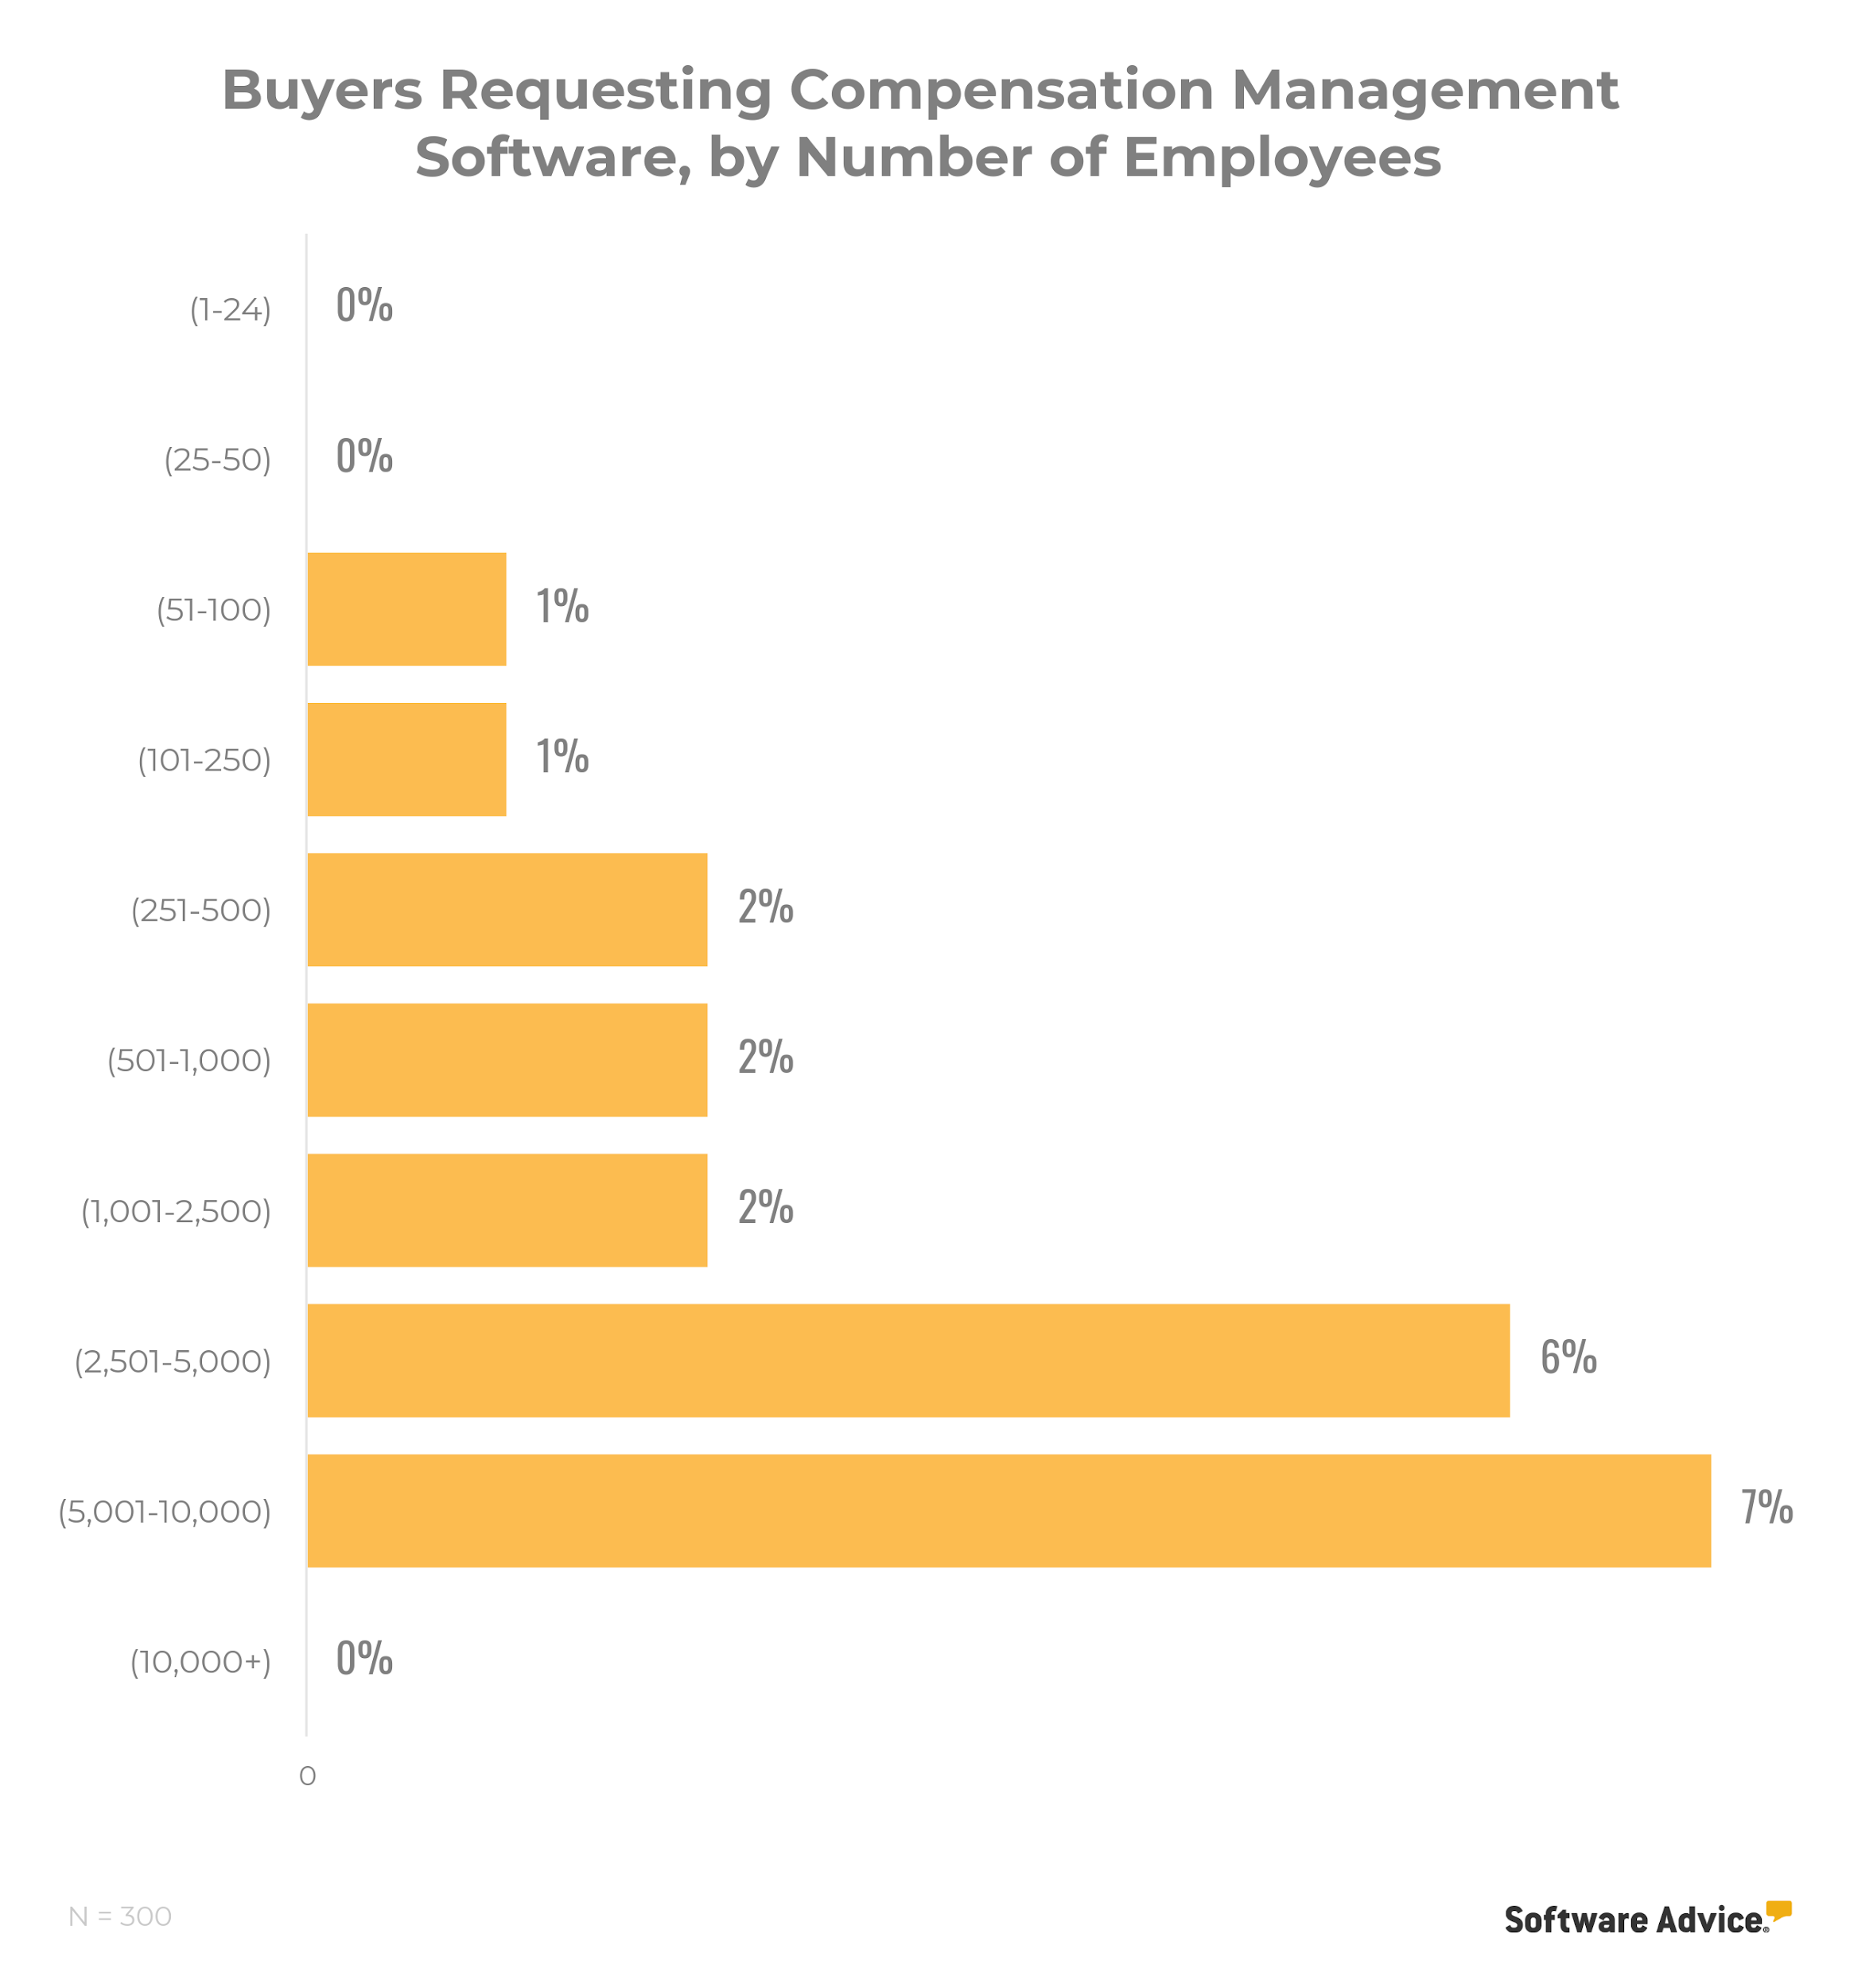 chart showing that compensation management is of interest to businesses with more than 5,000 employees